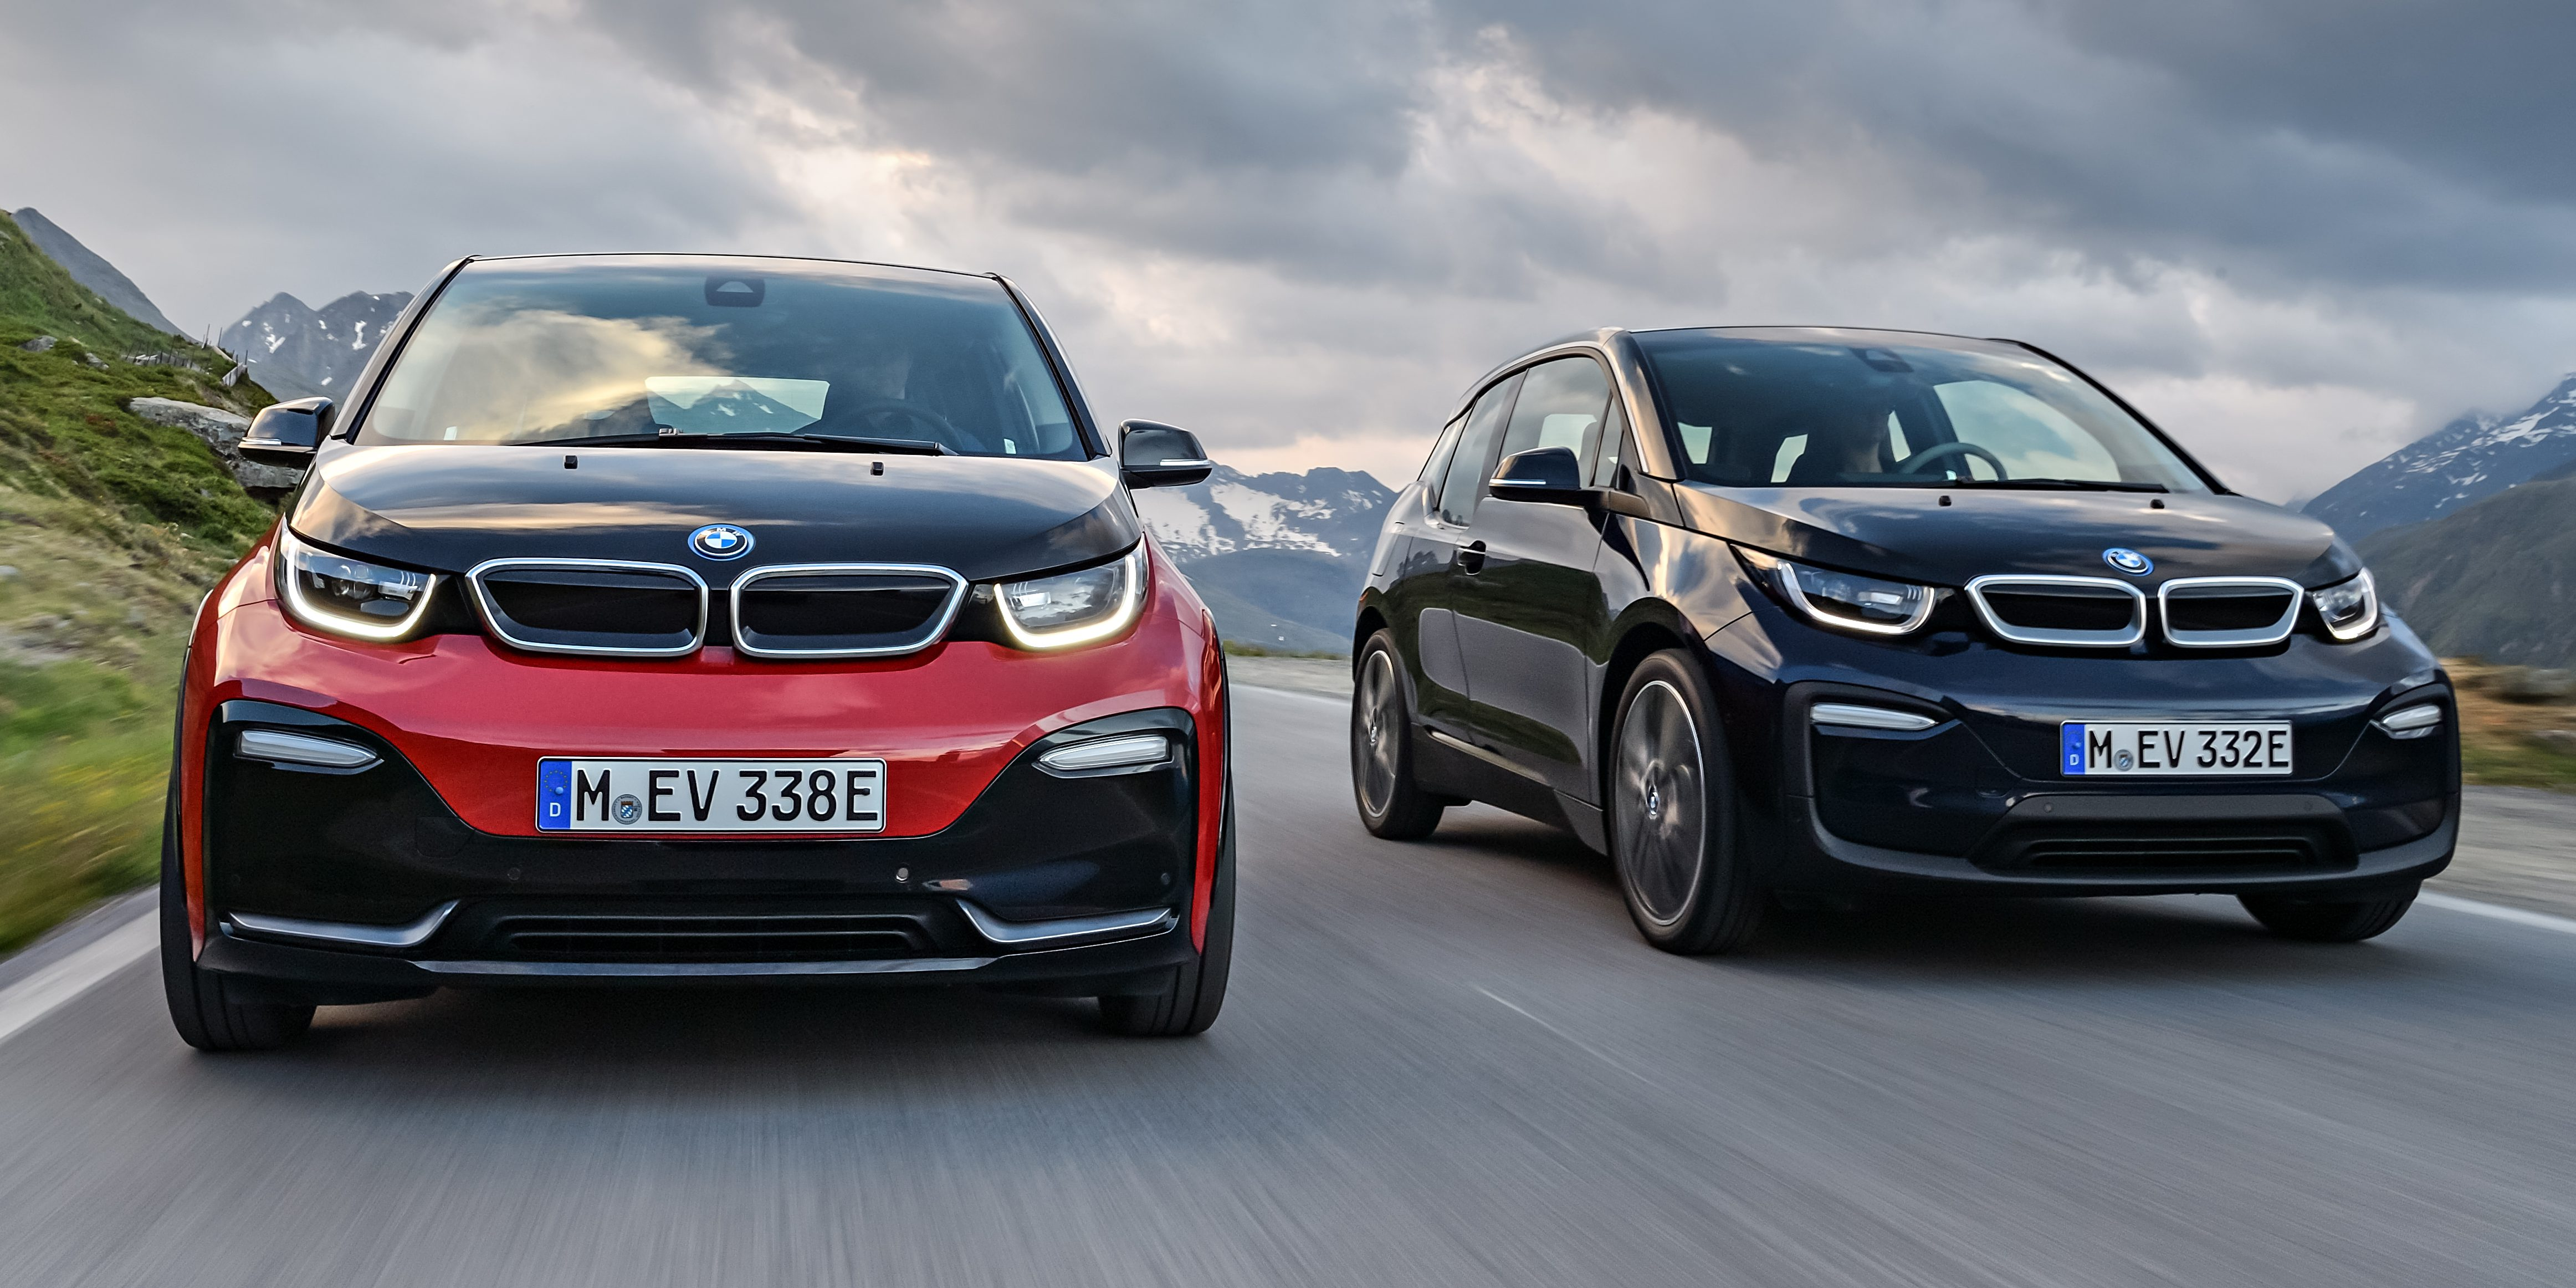 Perfect BMW Is Considering Killing The I3 And I8 Programs Ahead Of New Generation  Of EVs